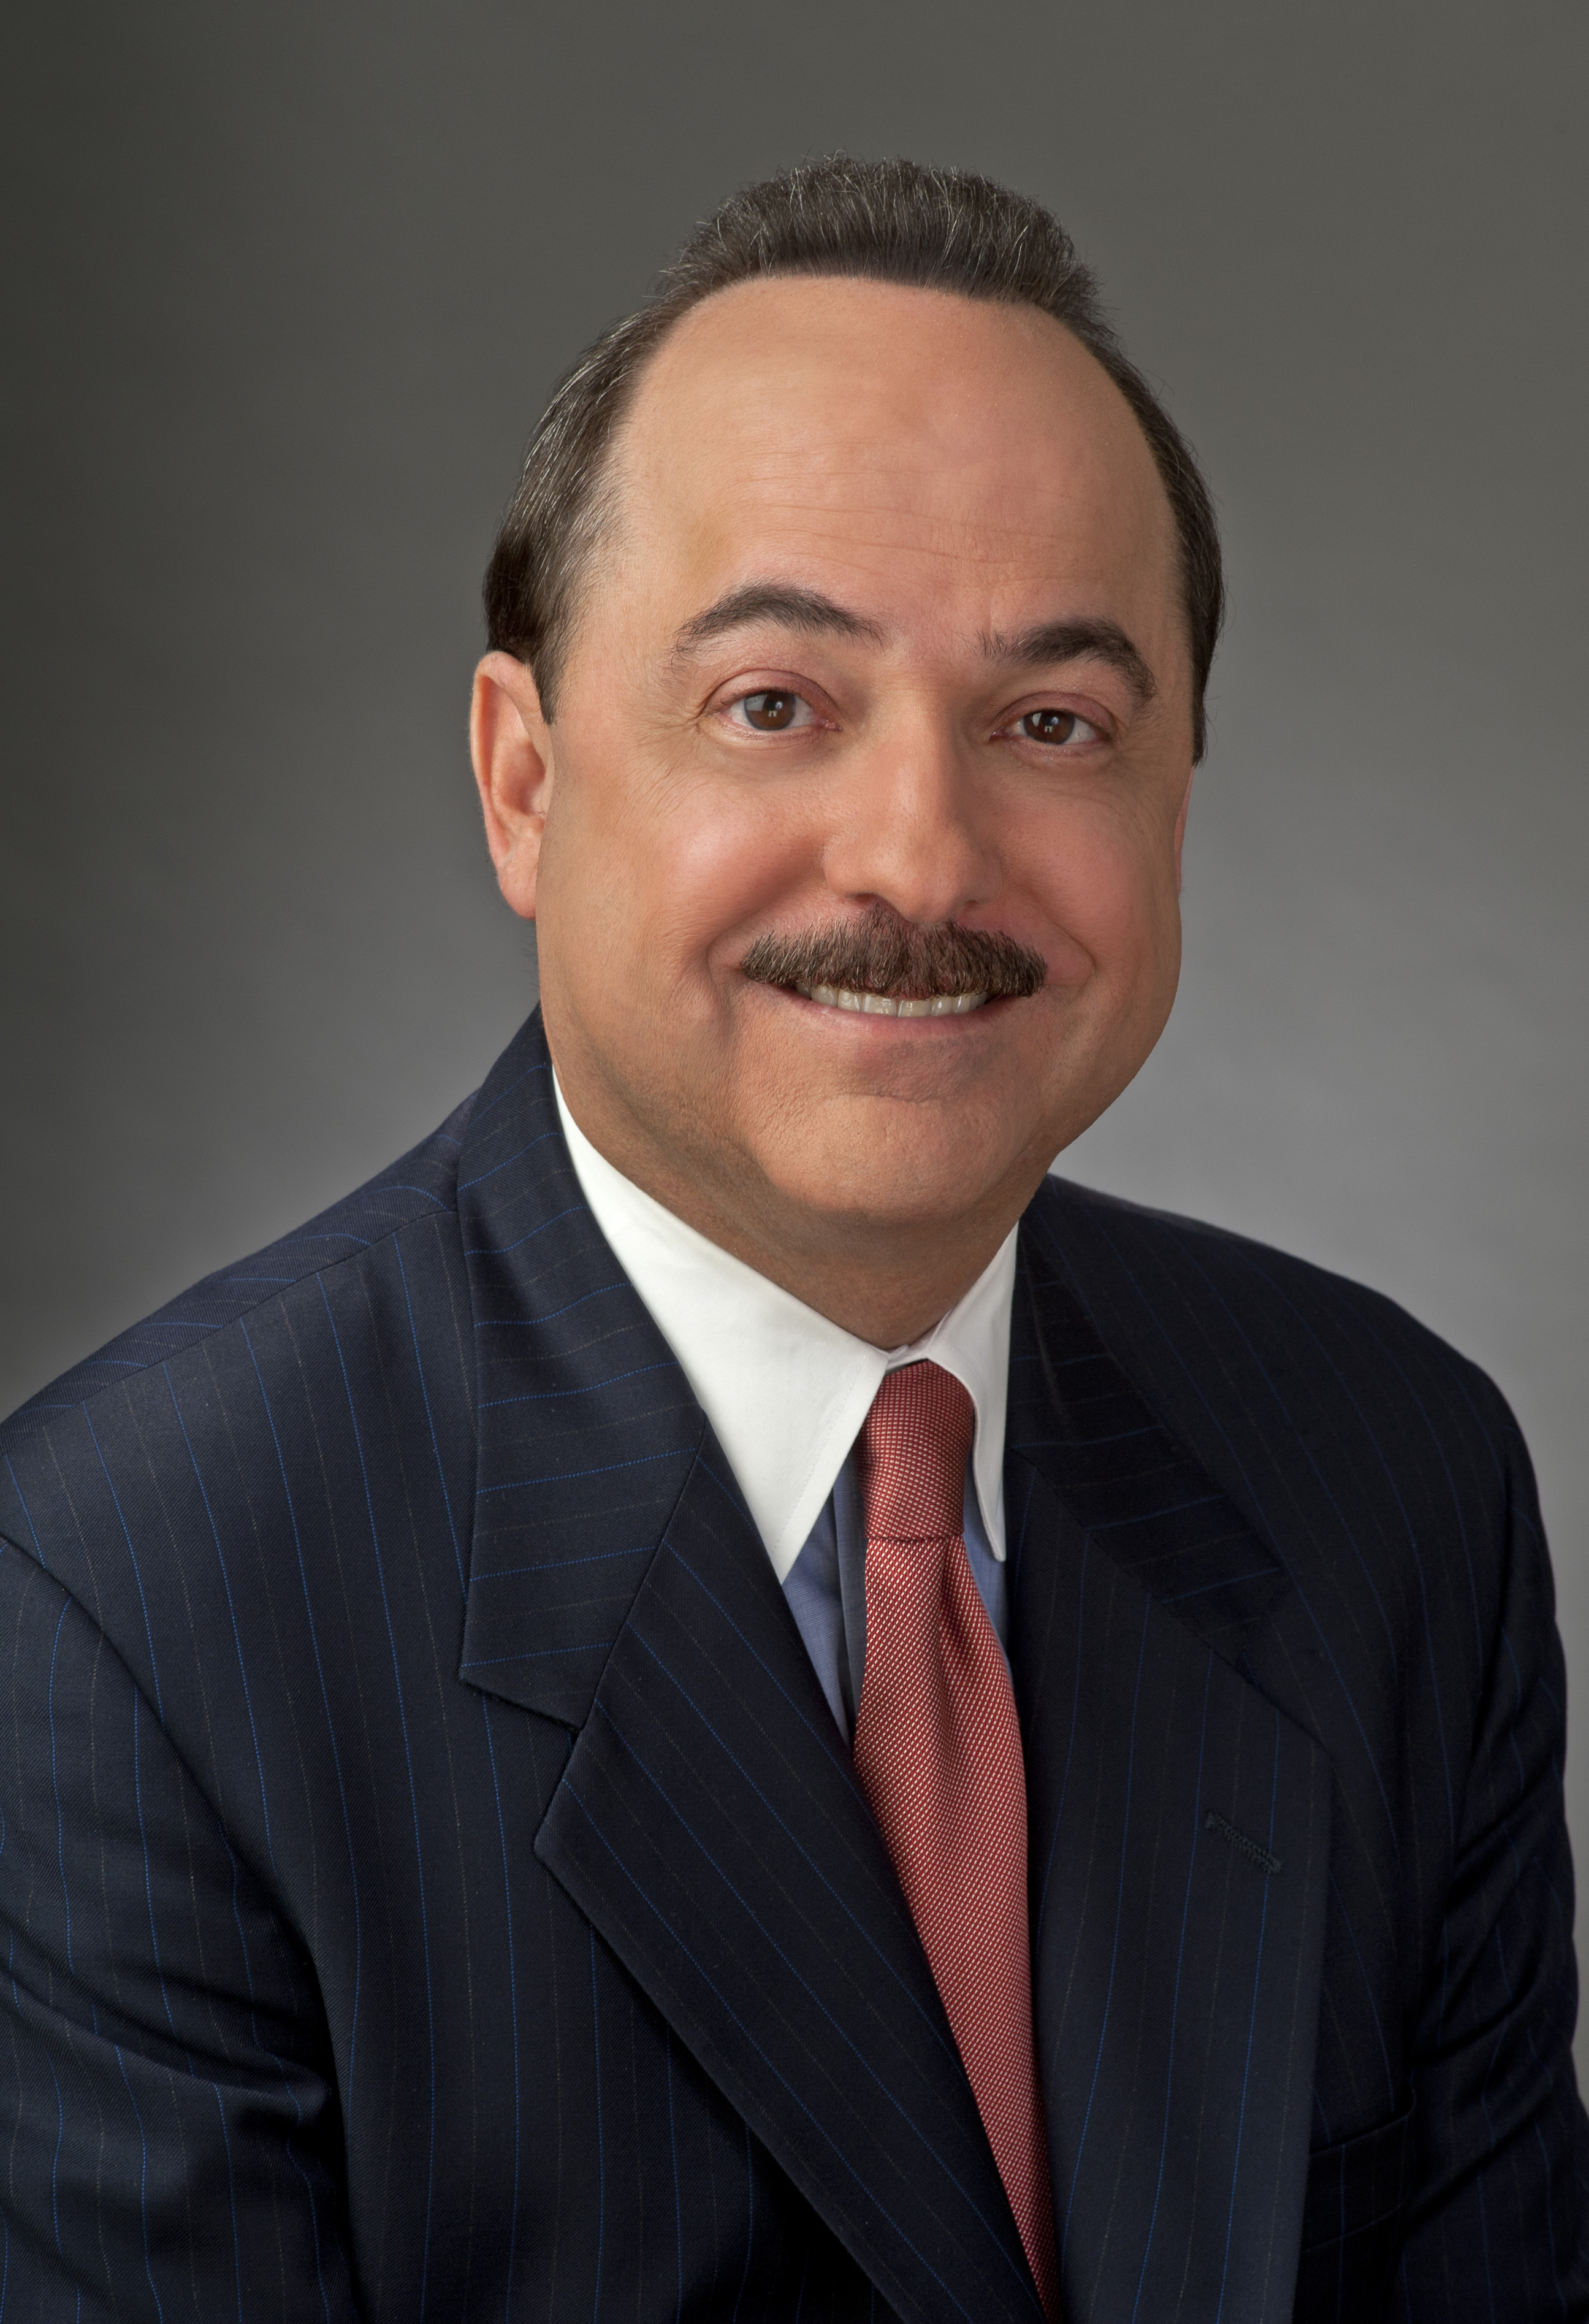 Ralph de la Vega, president and CEO of AT&T Mobile & Business Solutions